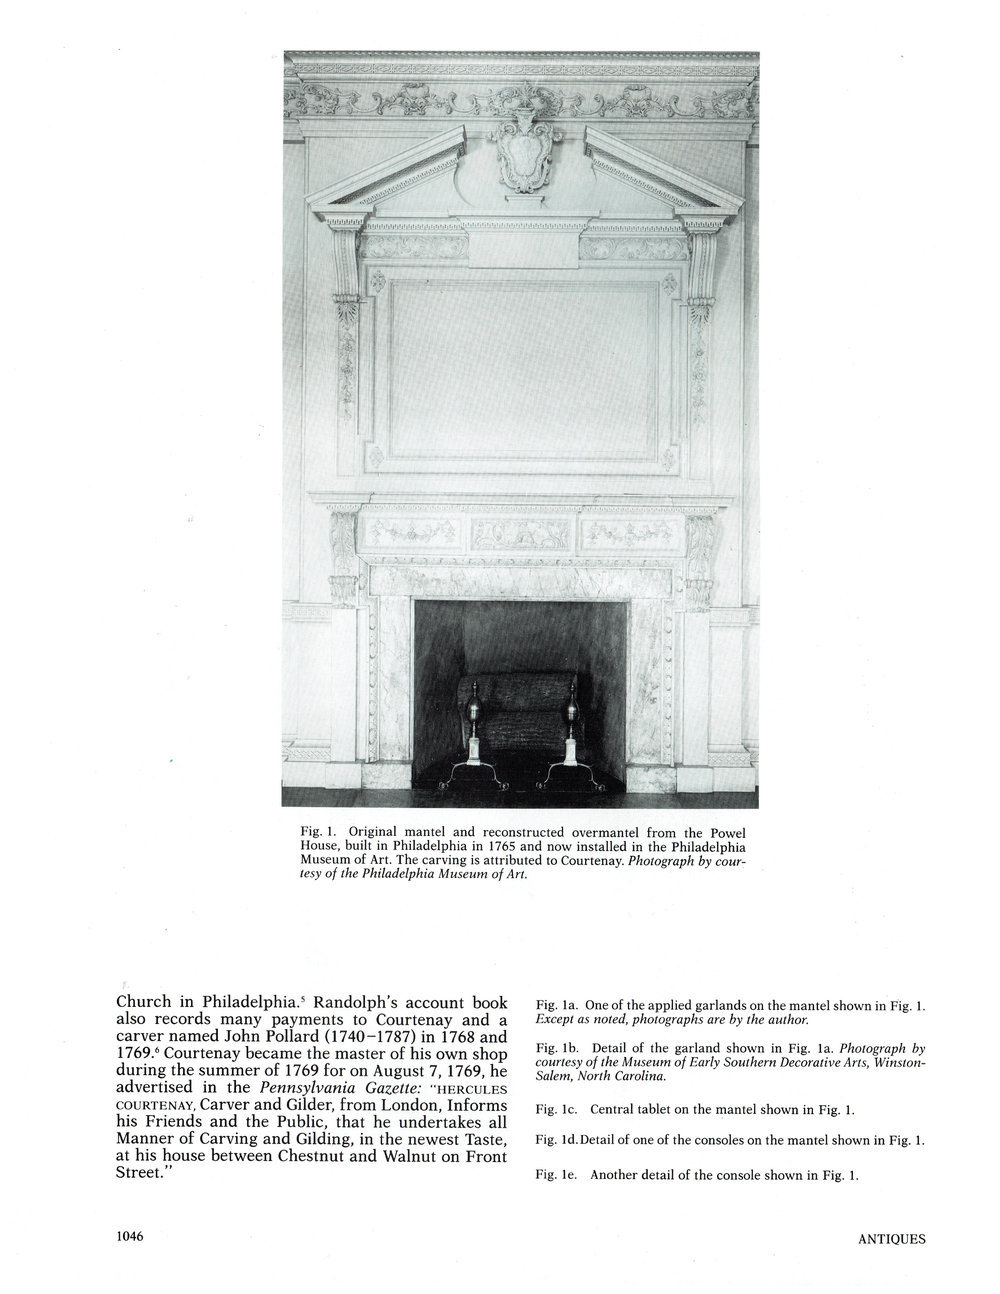 2018.01.16 CPF Antiques Article 04 - Pg1046.jpg